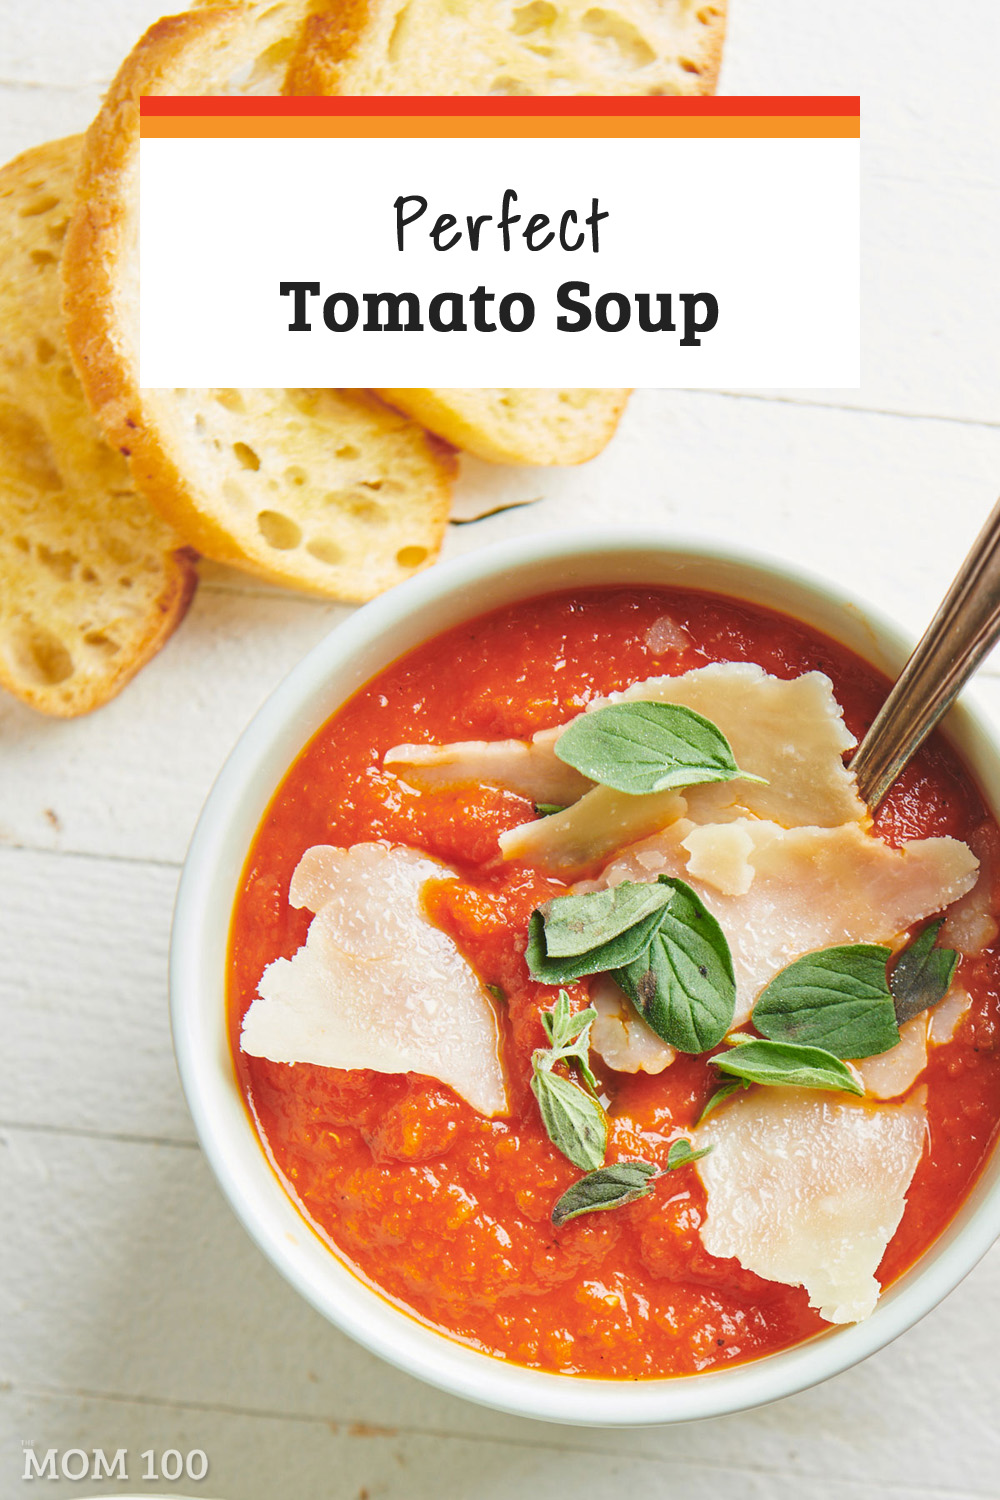 Perfect Tomato Soup: There are lots of ways to season up a good tomato soup, but sometimes you just want the classic—bursting with tomato flavor, silky smooth, and not complicated by much else. This is that soup. #vegan #vegetarian #glutenfree #gf